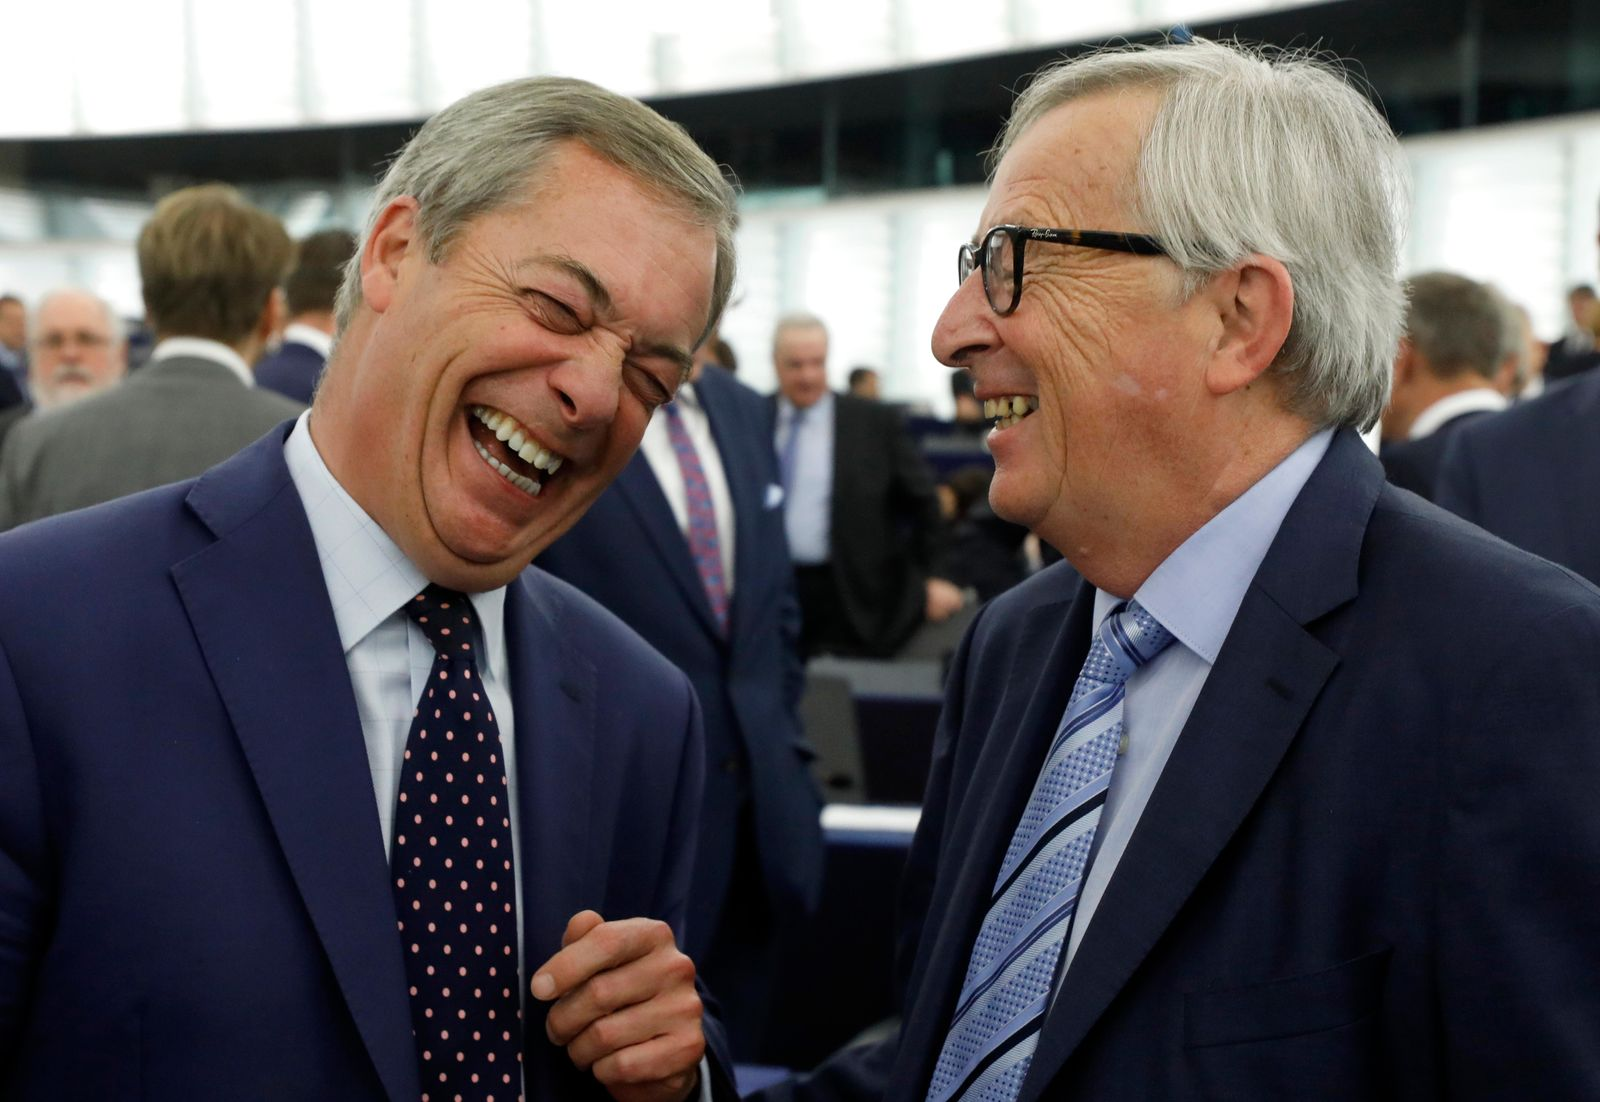 Brexit Party leader Nigel Farage shares a laugh with European Commission President Jean-Claude Juncker Tuesday, Oct. 22, 2019 at the European Parliament in Strasbourg, eastern France. Britain faces another week of political gridlock after British lawmakers on Mond (AP Photo/Jean-Francois Badias)